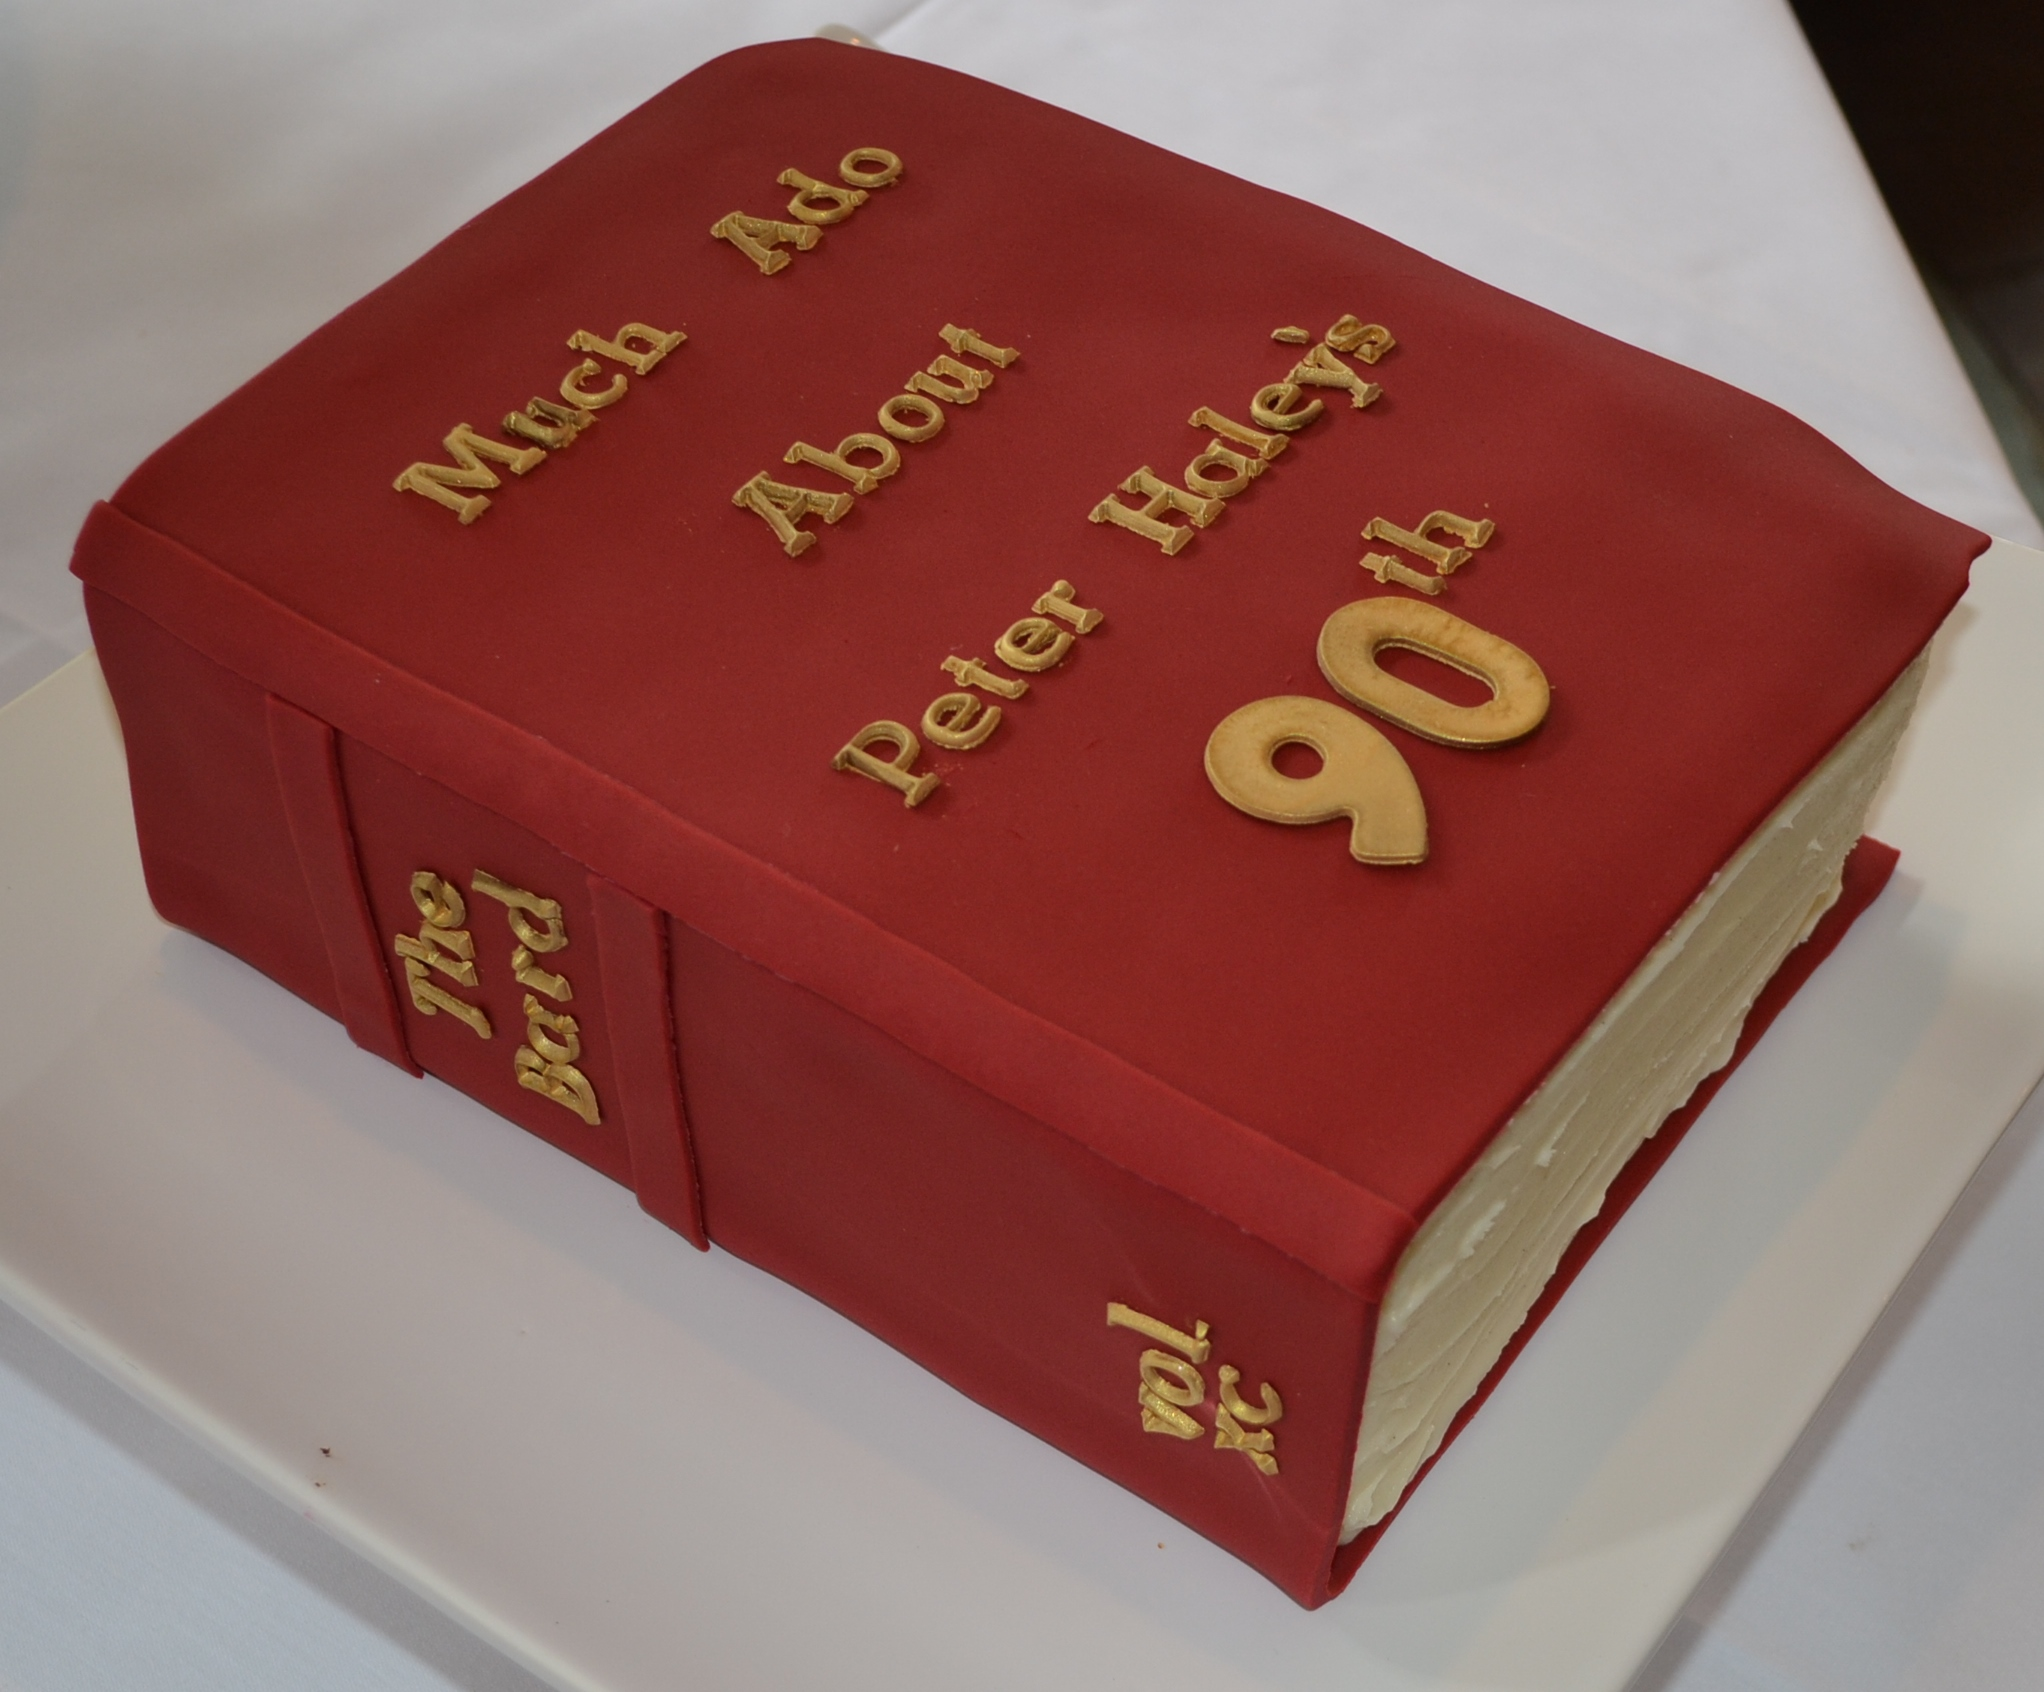 Best Cake Design Book : birthday cakes book design - 28 images - 24 cakes inspired ...